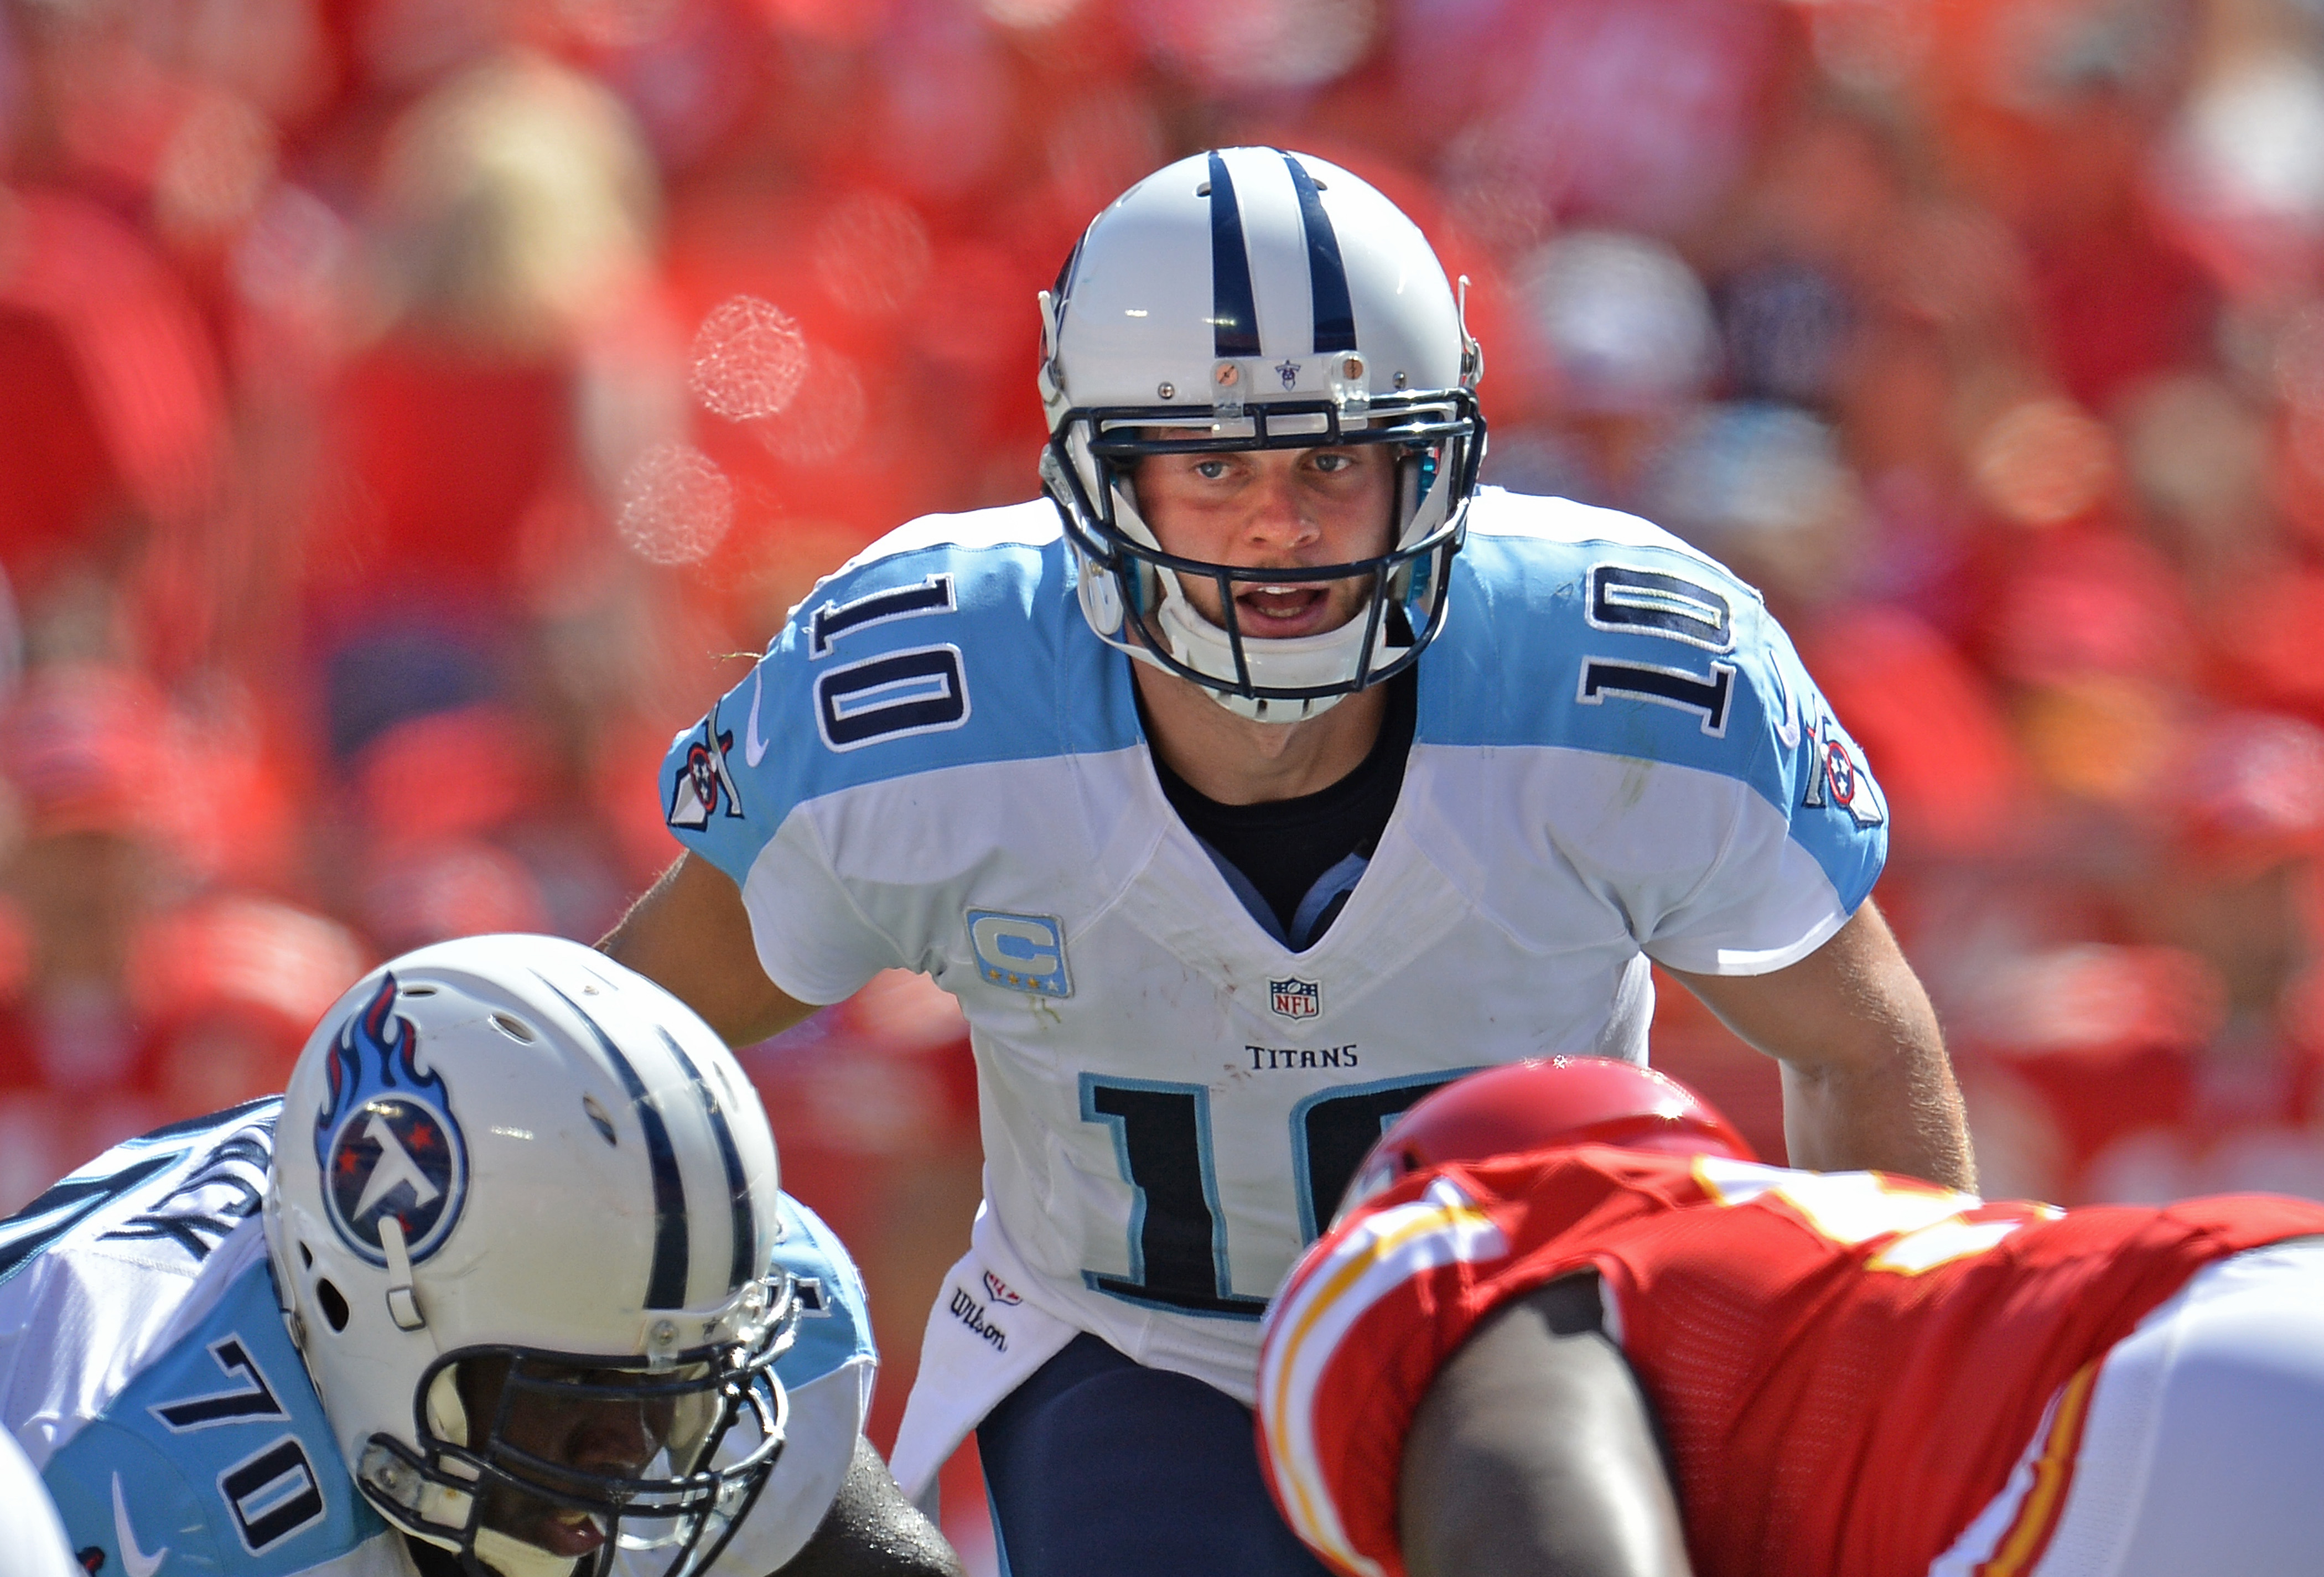 Quarterback Jake Locker of the Tennessee Titans calls out a play